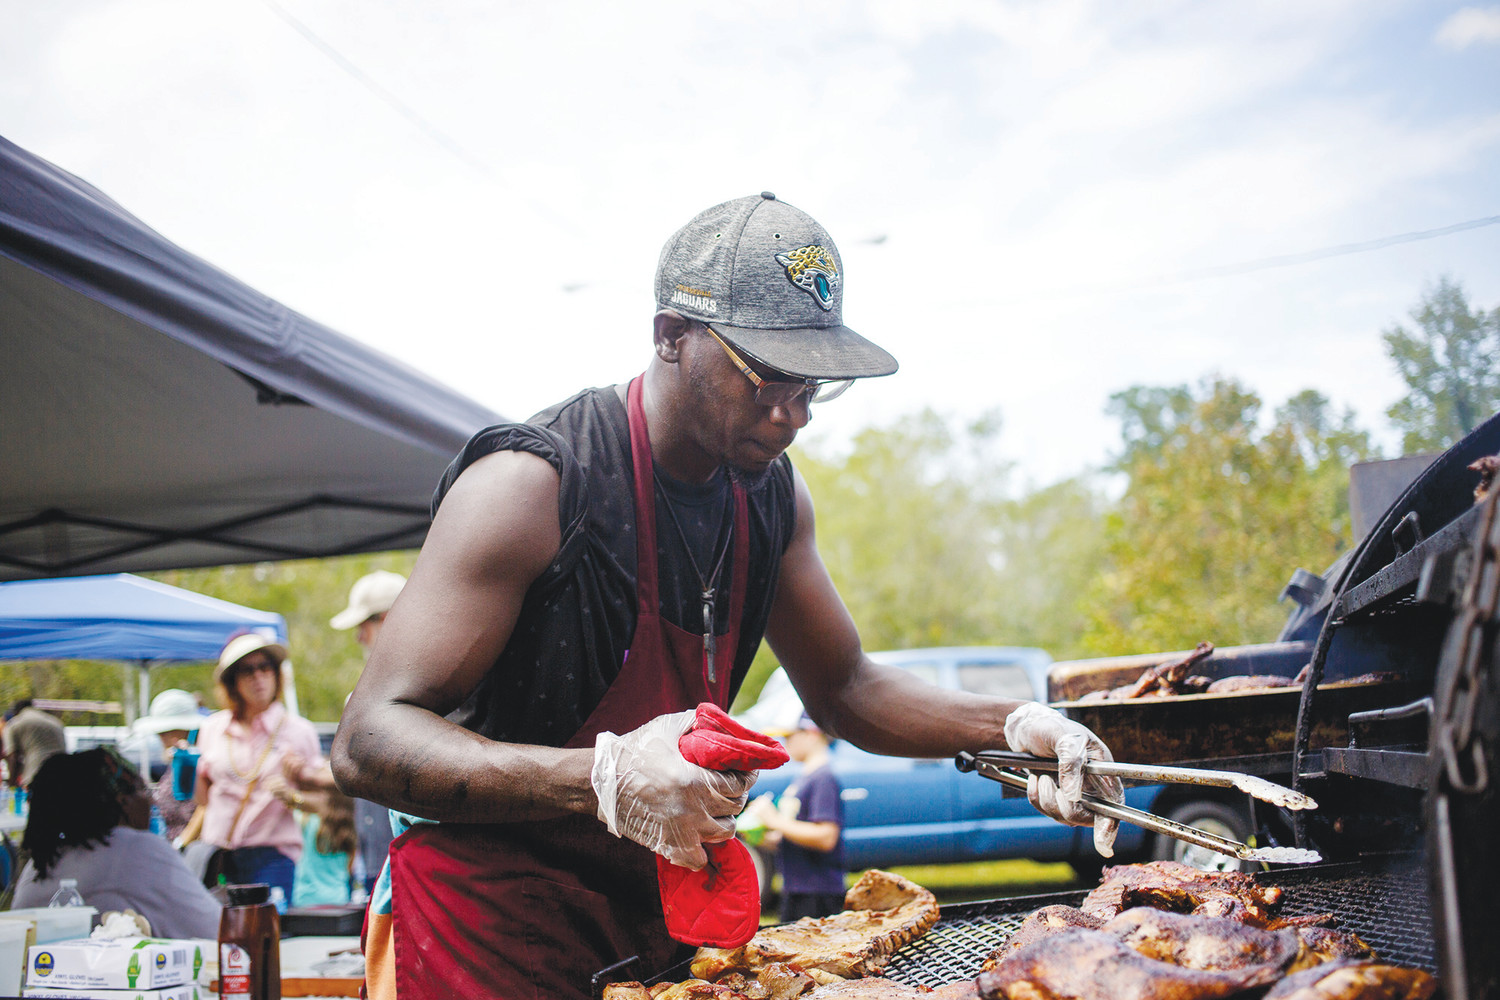 Jacksonville restauranteur Isaac Hall works the smoker Saturday at the Soul Food Festival in Green Cove Springs. Hall's aromatic meats drew patrons throughout the day who came to his tent, Good Food 247, seeking barbecued chicken and ribs.